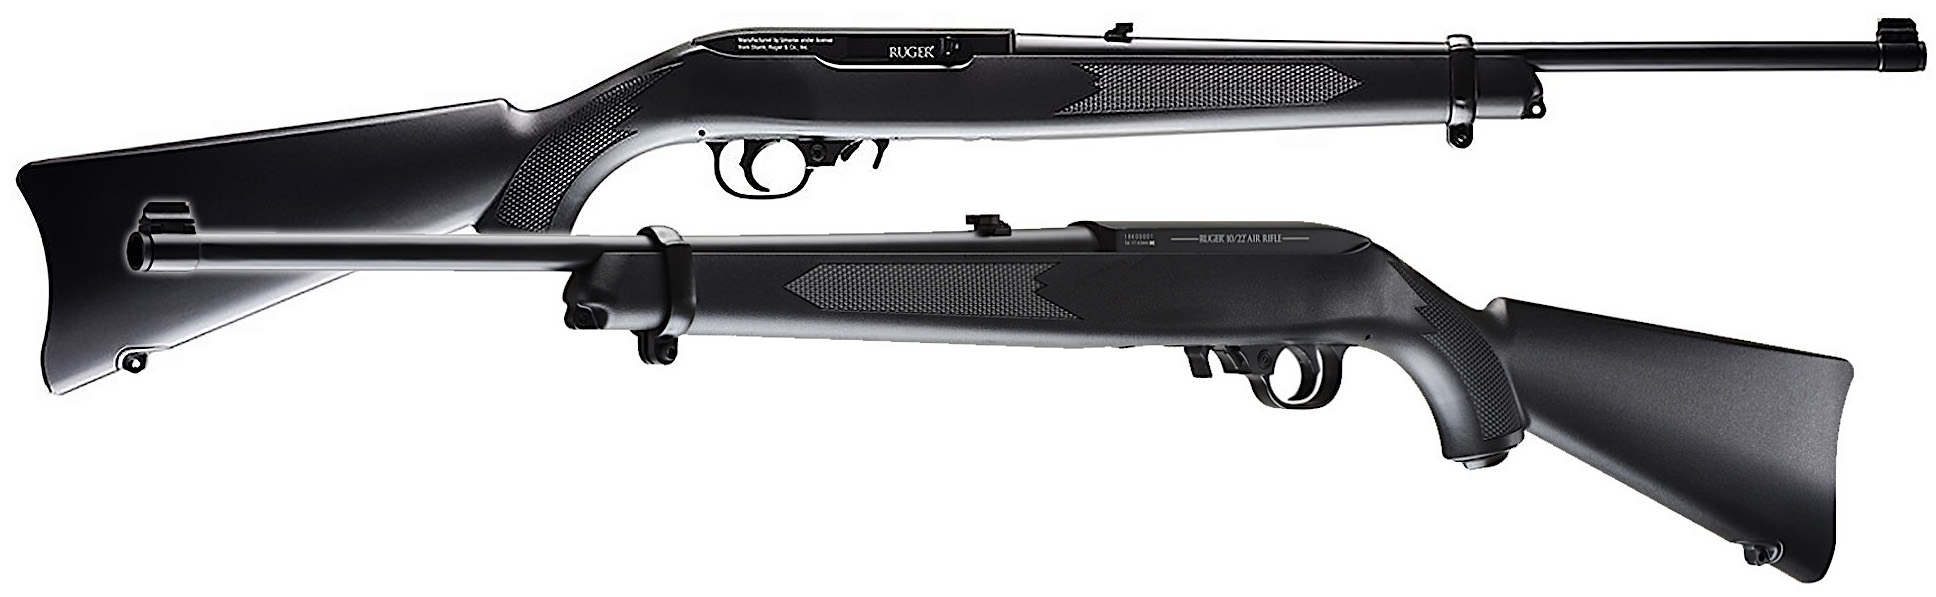 Umarex Ruger 10:22 CO2 Pellet Rifle Double Side.jpg